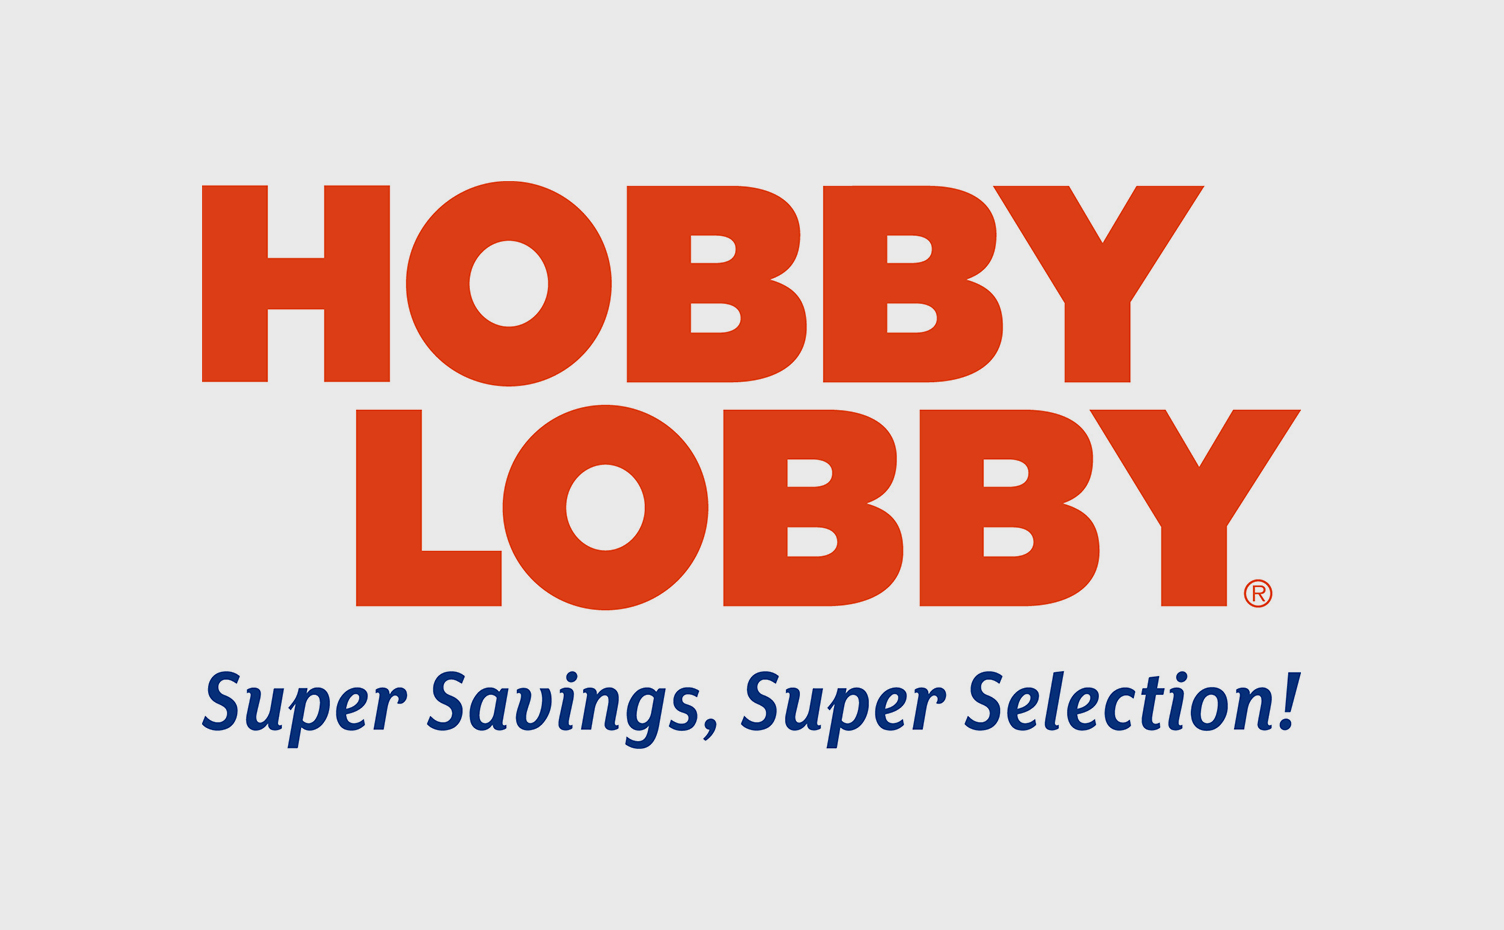 Hobby Lobby Gift Card Giveaway on Facebook